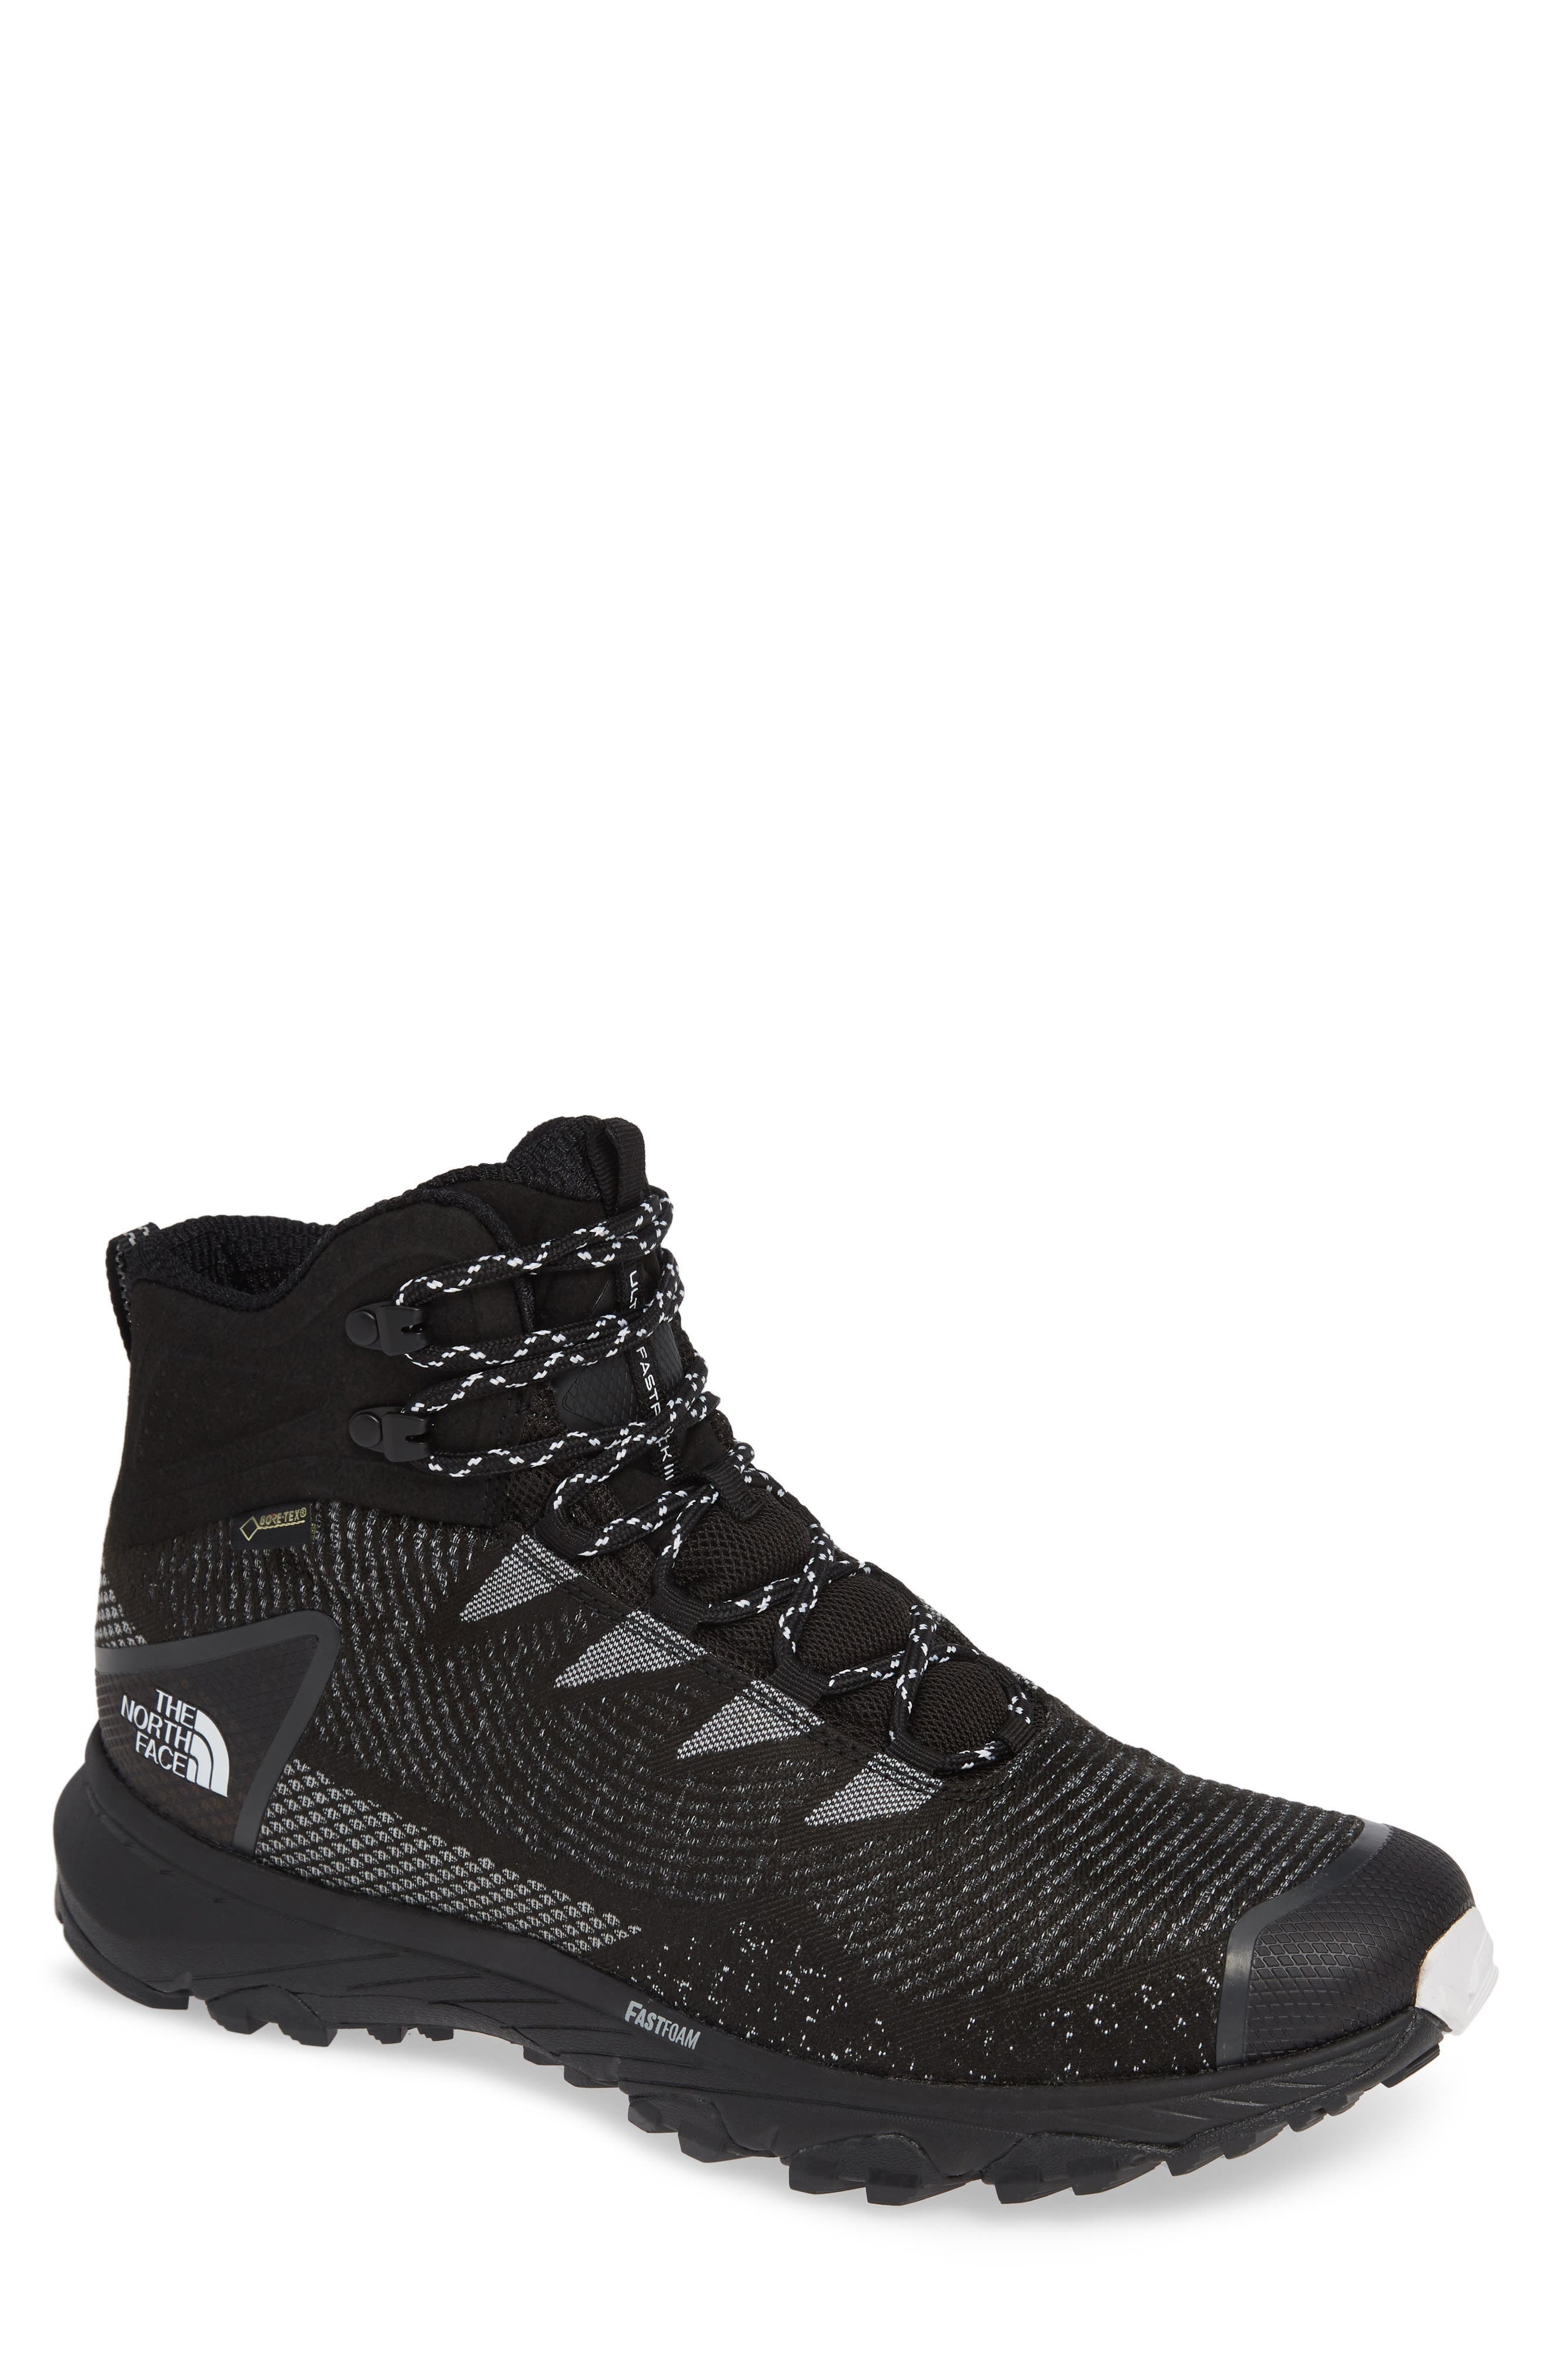 THE NORTH FACE, Ultra Fastpack III Mid Gore-Tex<sup>®</sup> Hiking Boot, Main thumbnail 1, color, BLACK/ WHITE